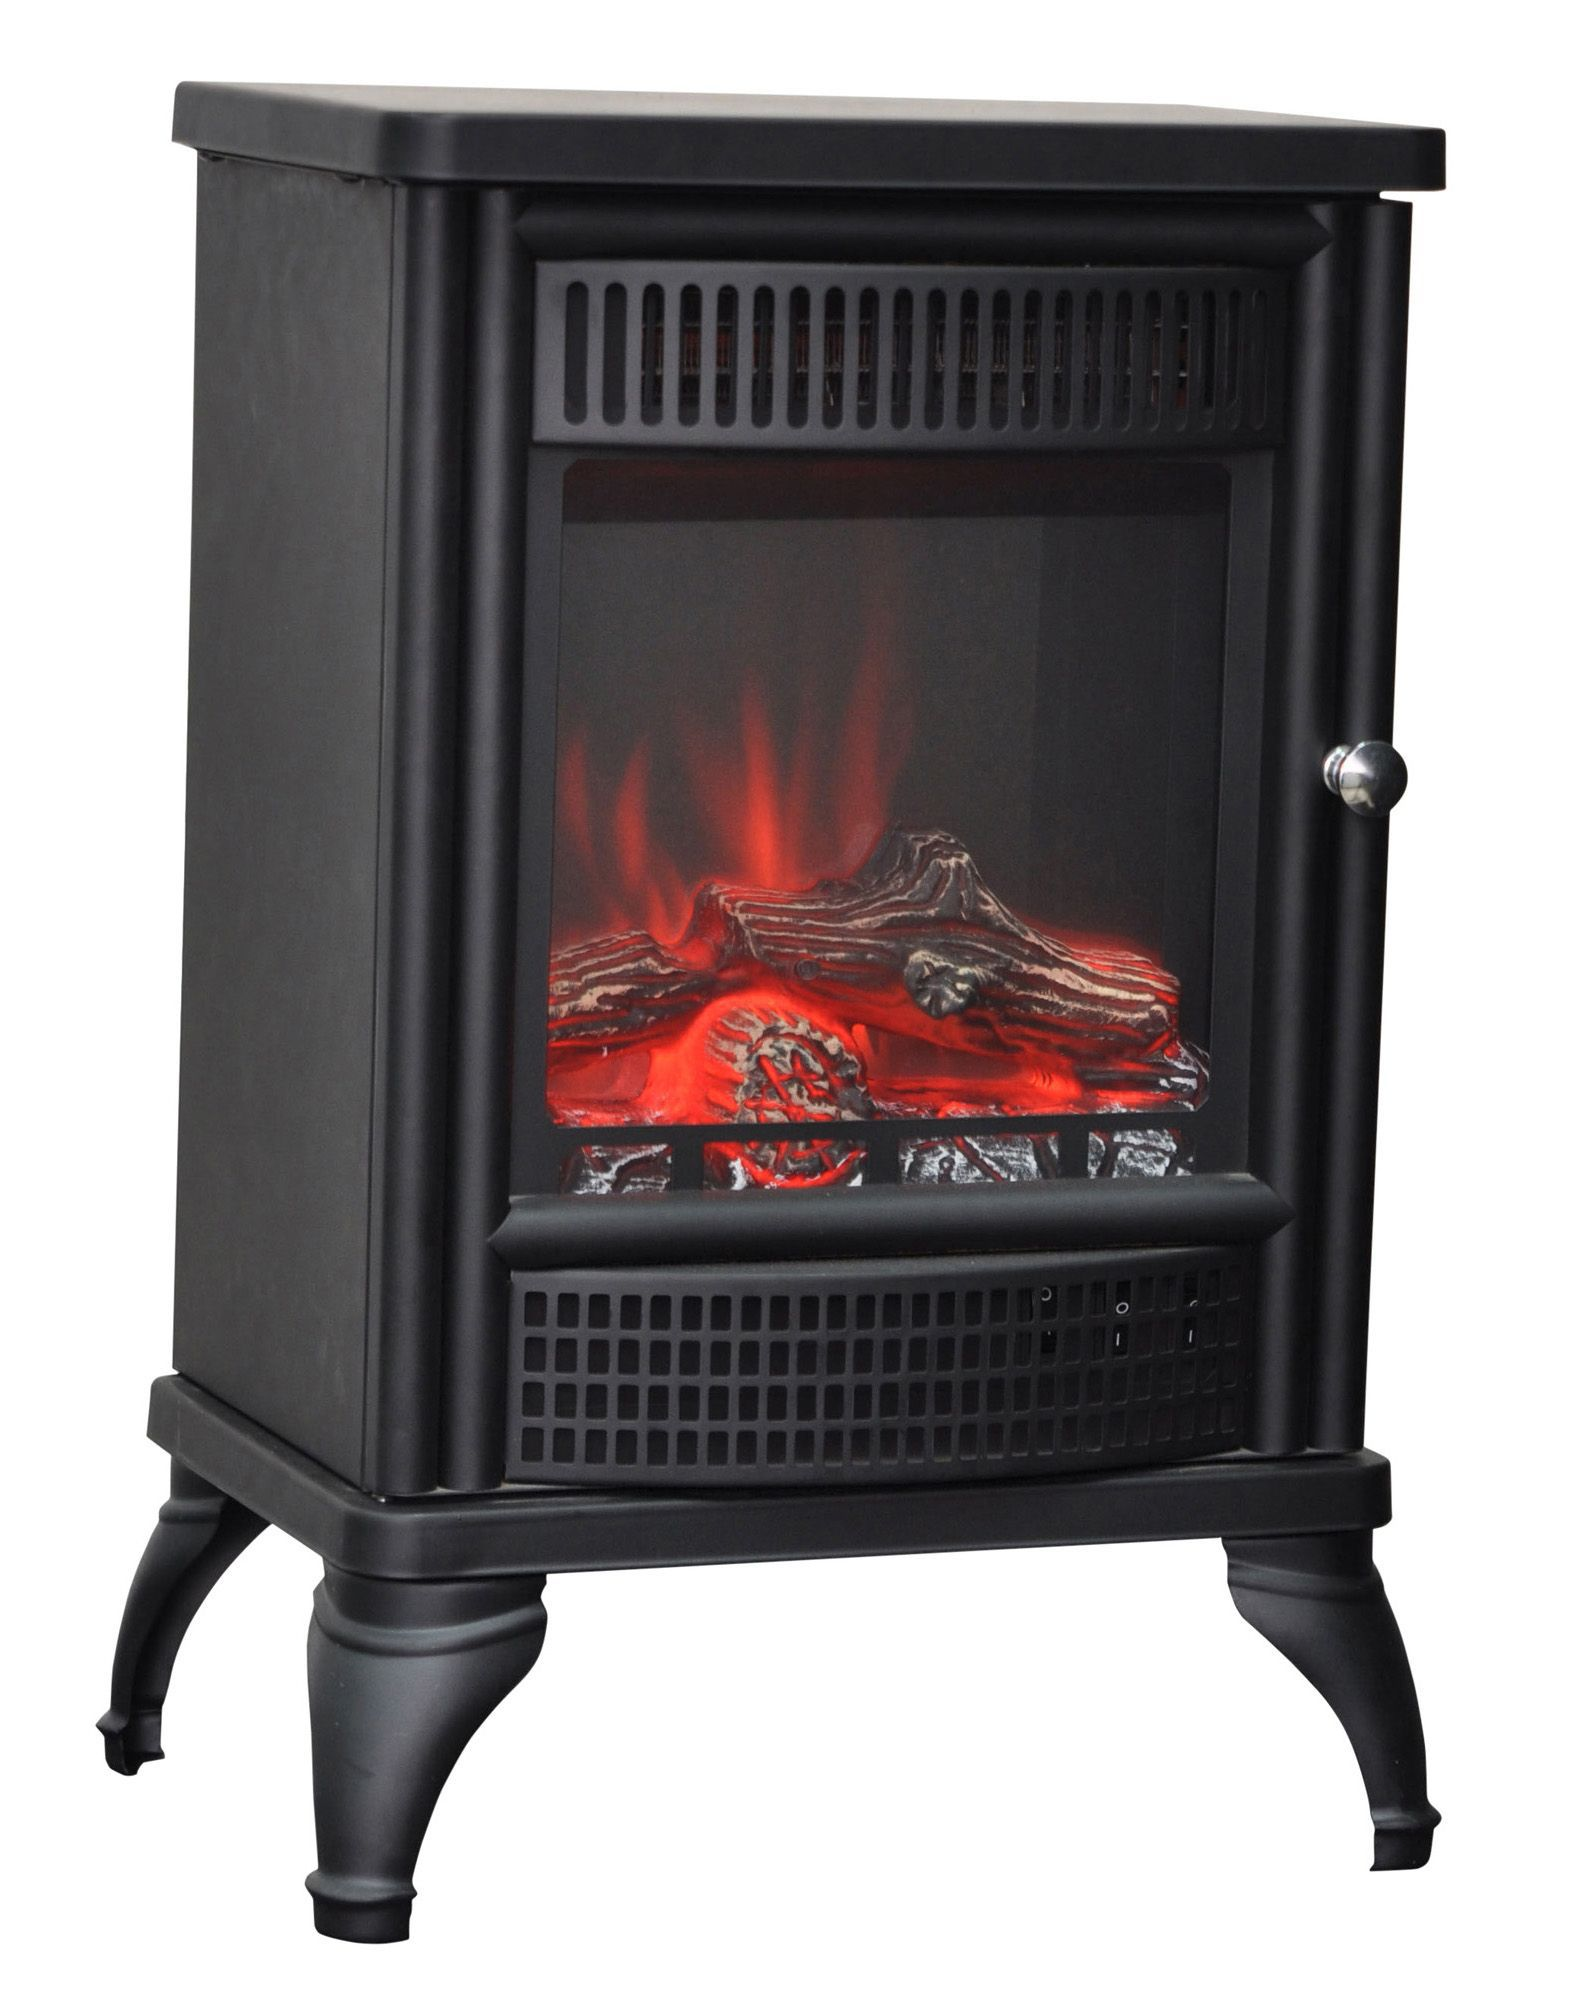 Blyss orebro black electric stove departments diy at b q for Kitchen and table orebro